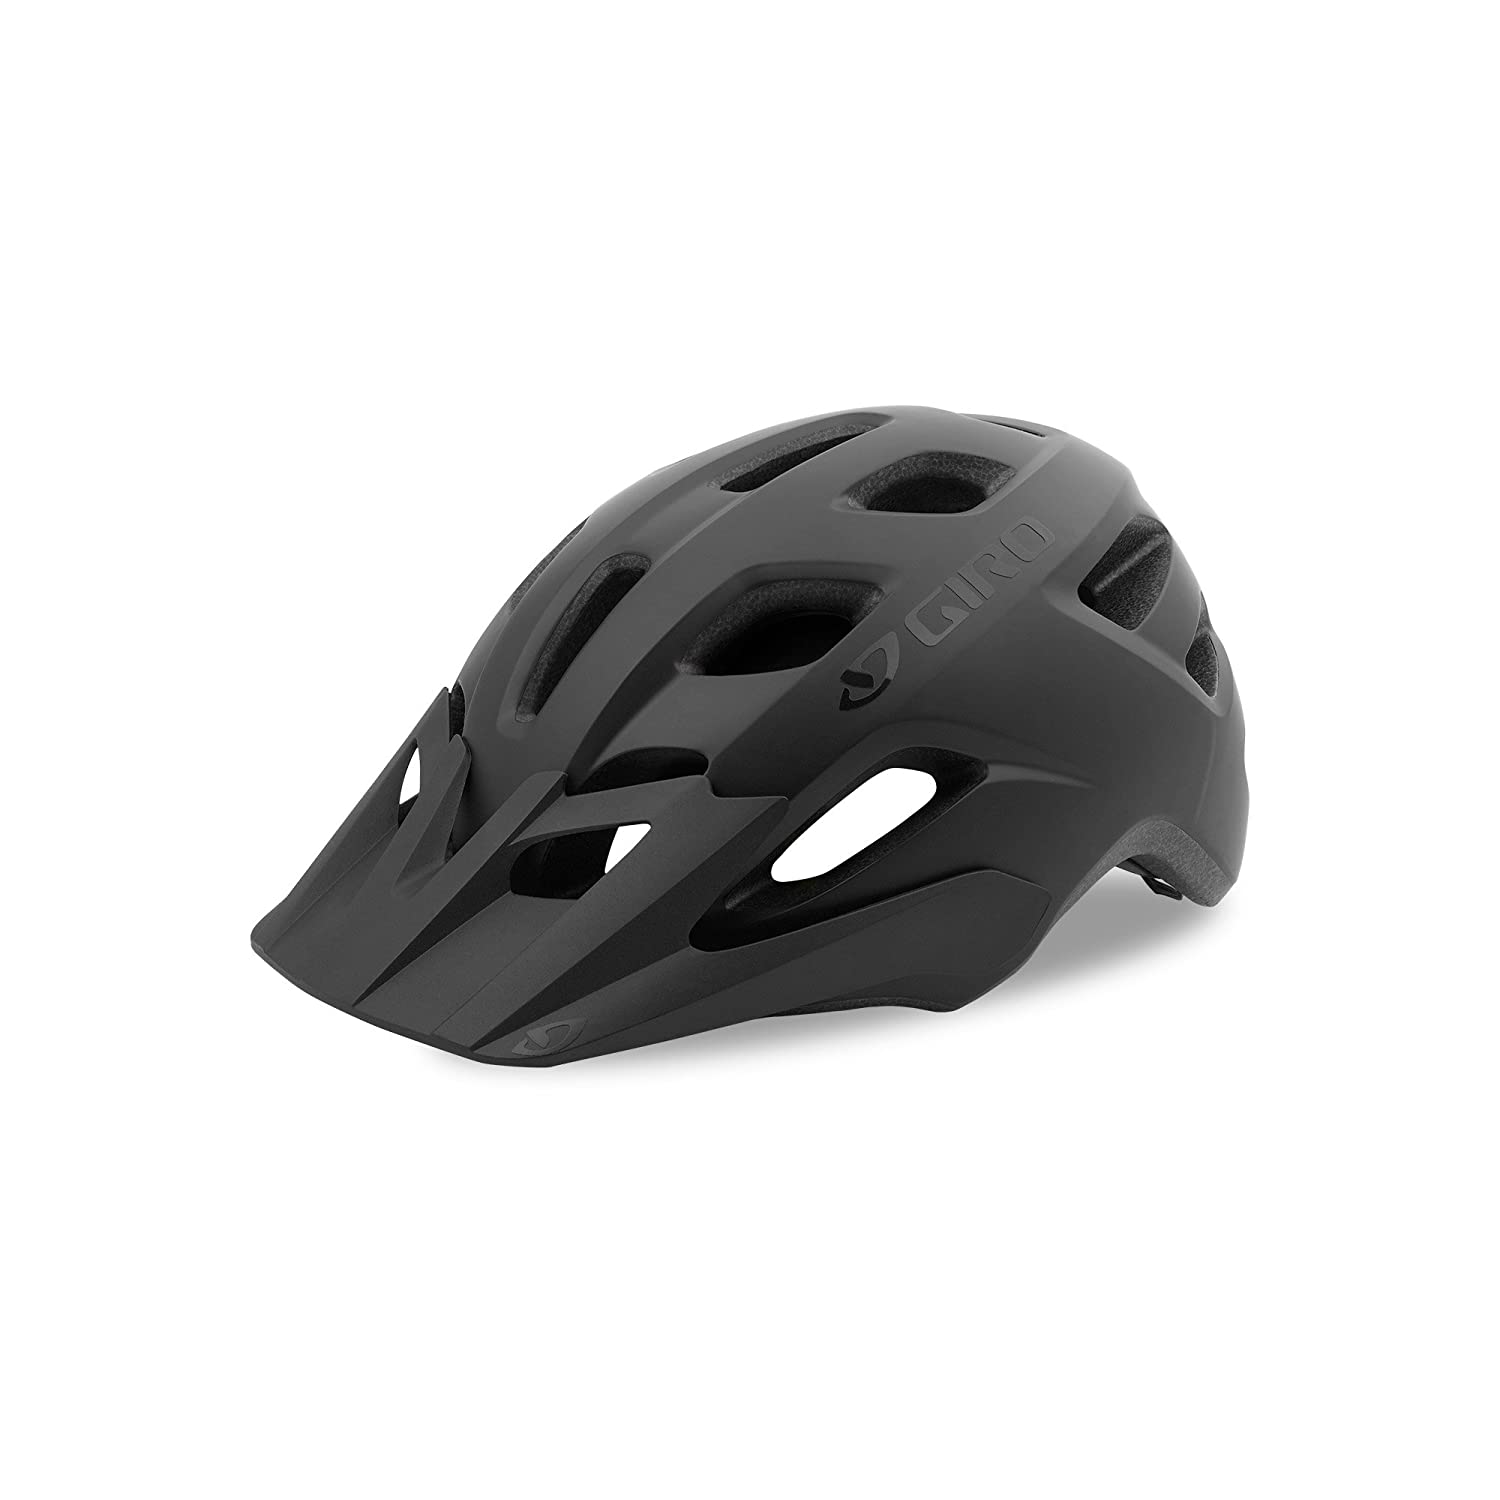 Amazon.com: Giro Fixture MIPS Bike Helmet,Matte Dark Red,One Size: Toys & Games